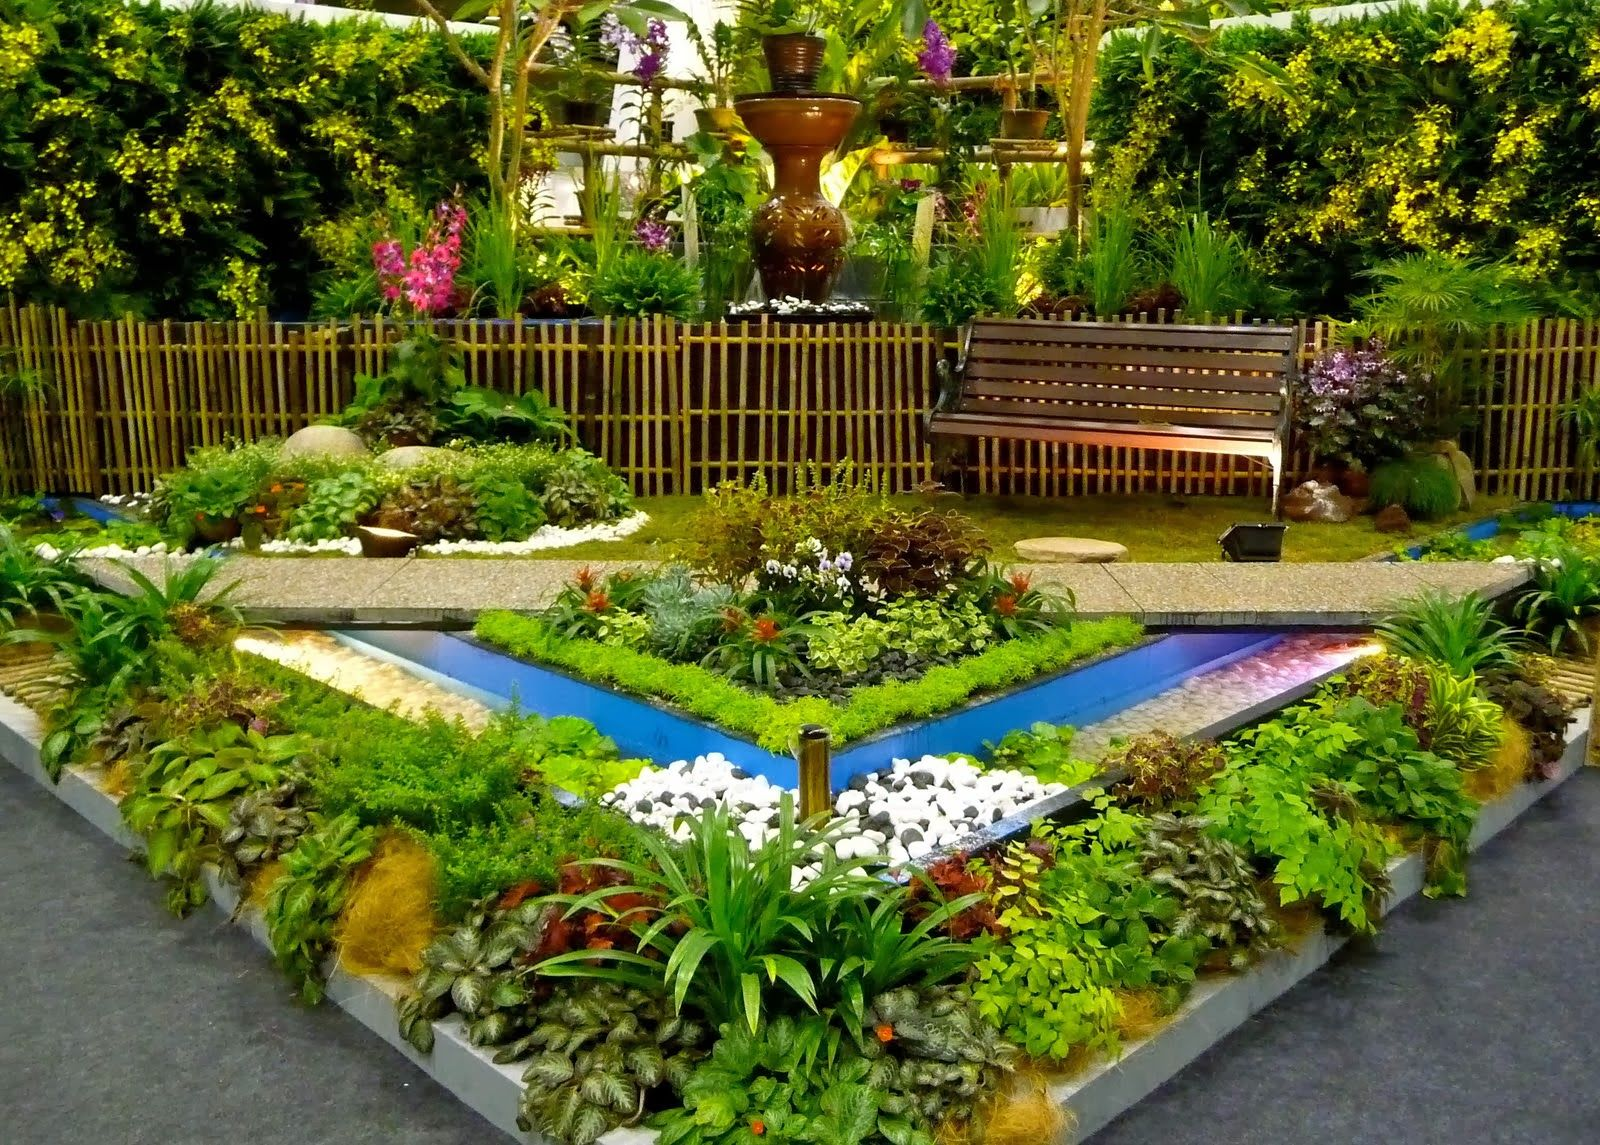 Best landscaping ideas i have ever seen wow design for Idea for small garden landscape